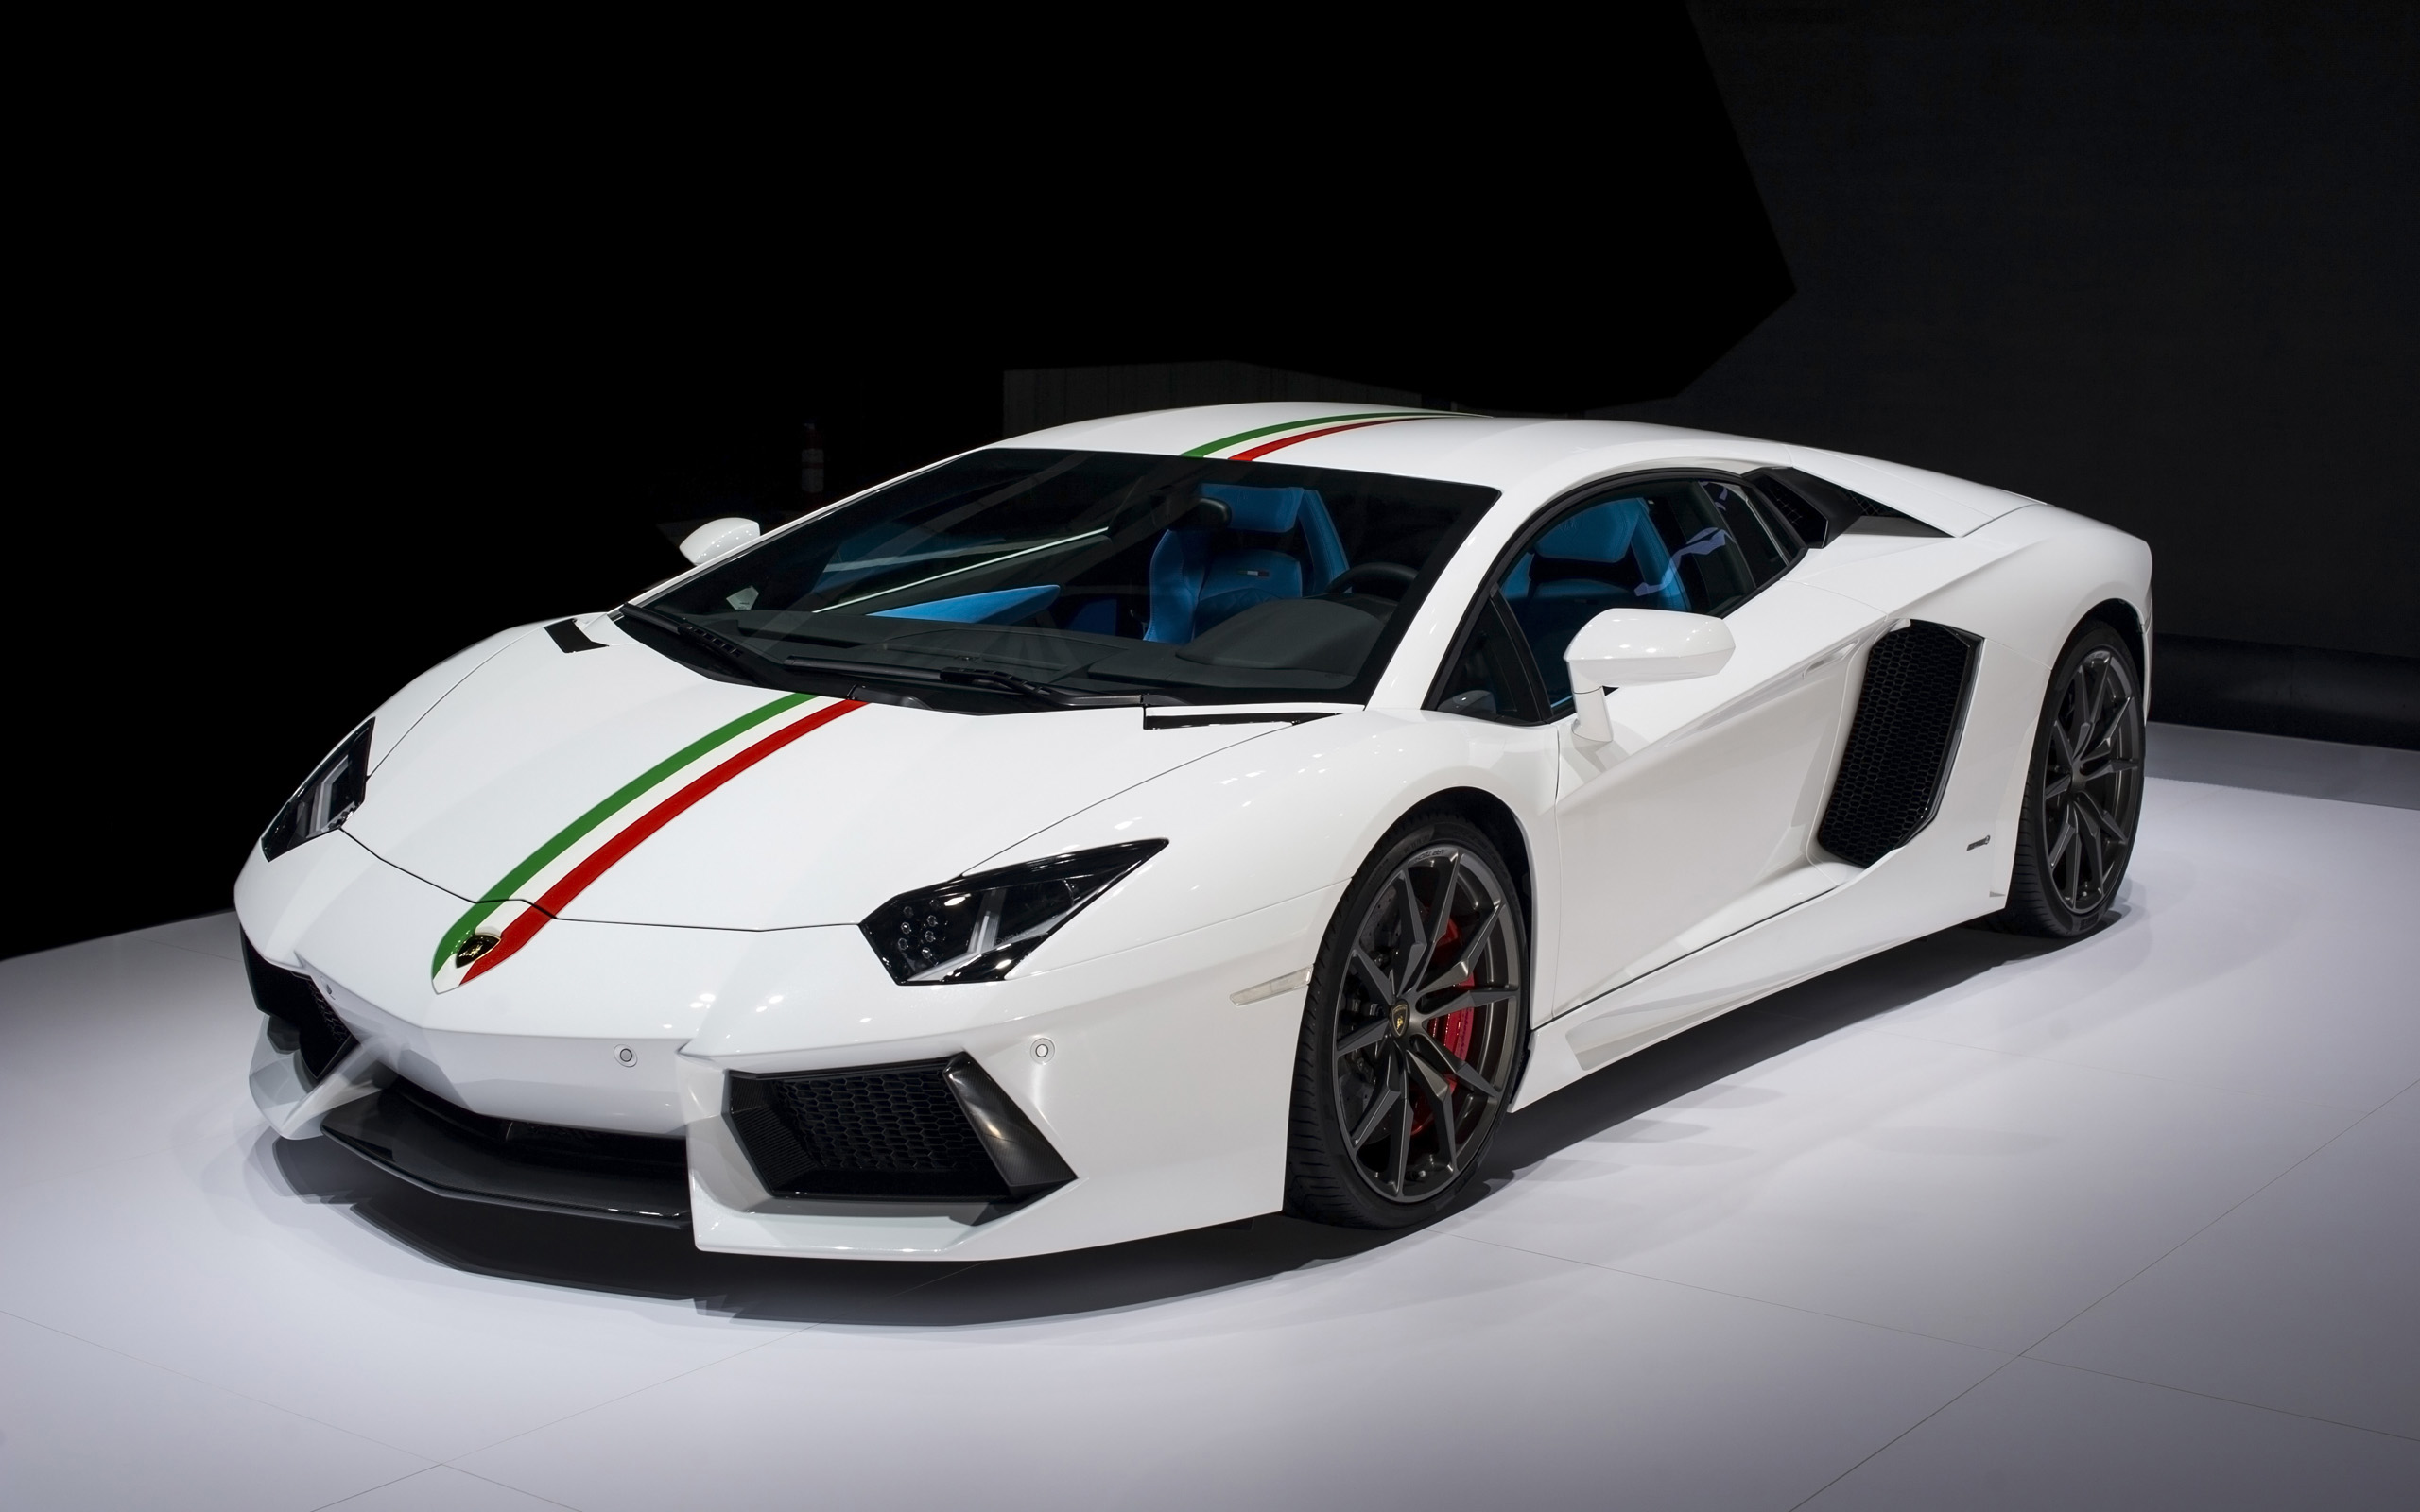 2014 lamborghini aventador lp700 4 coupe ad personam nazionale wallpaper hd car wallpapers. Black Bedroom Furniture Sets. Home Design Ideas